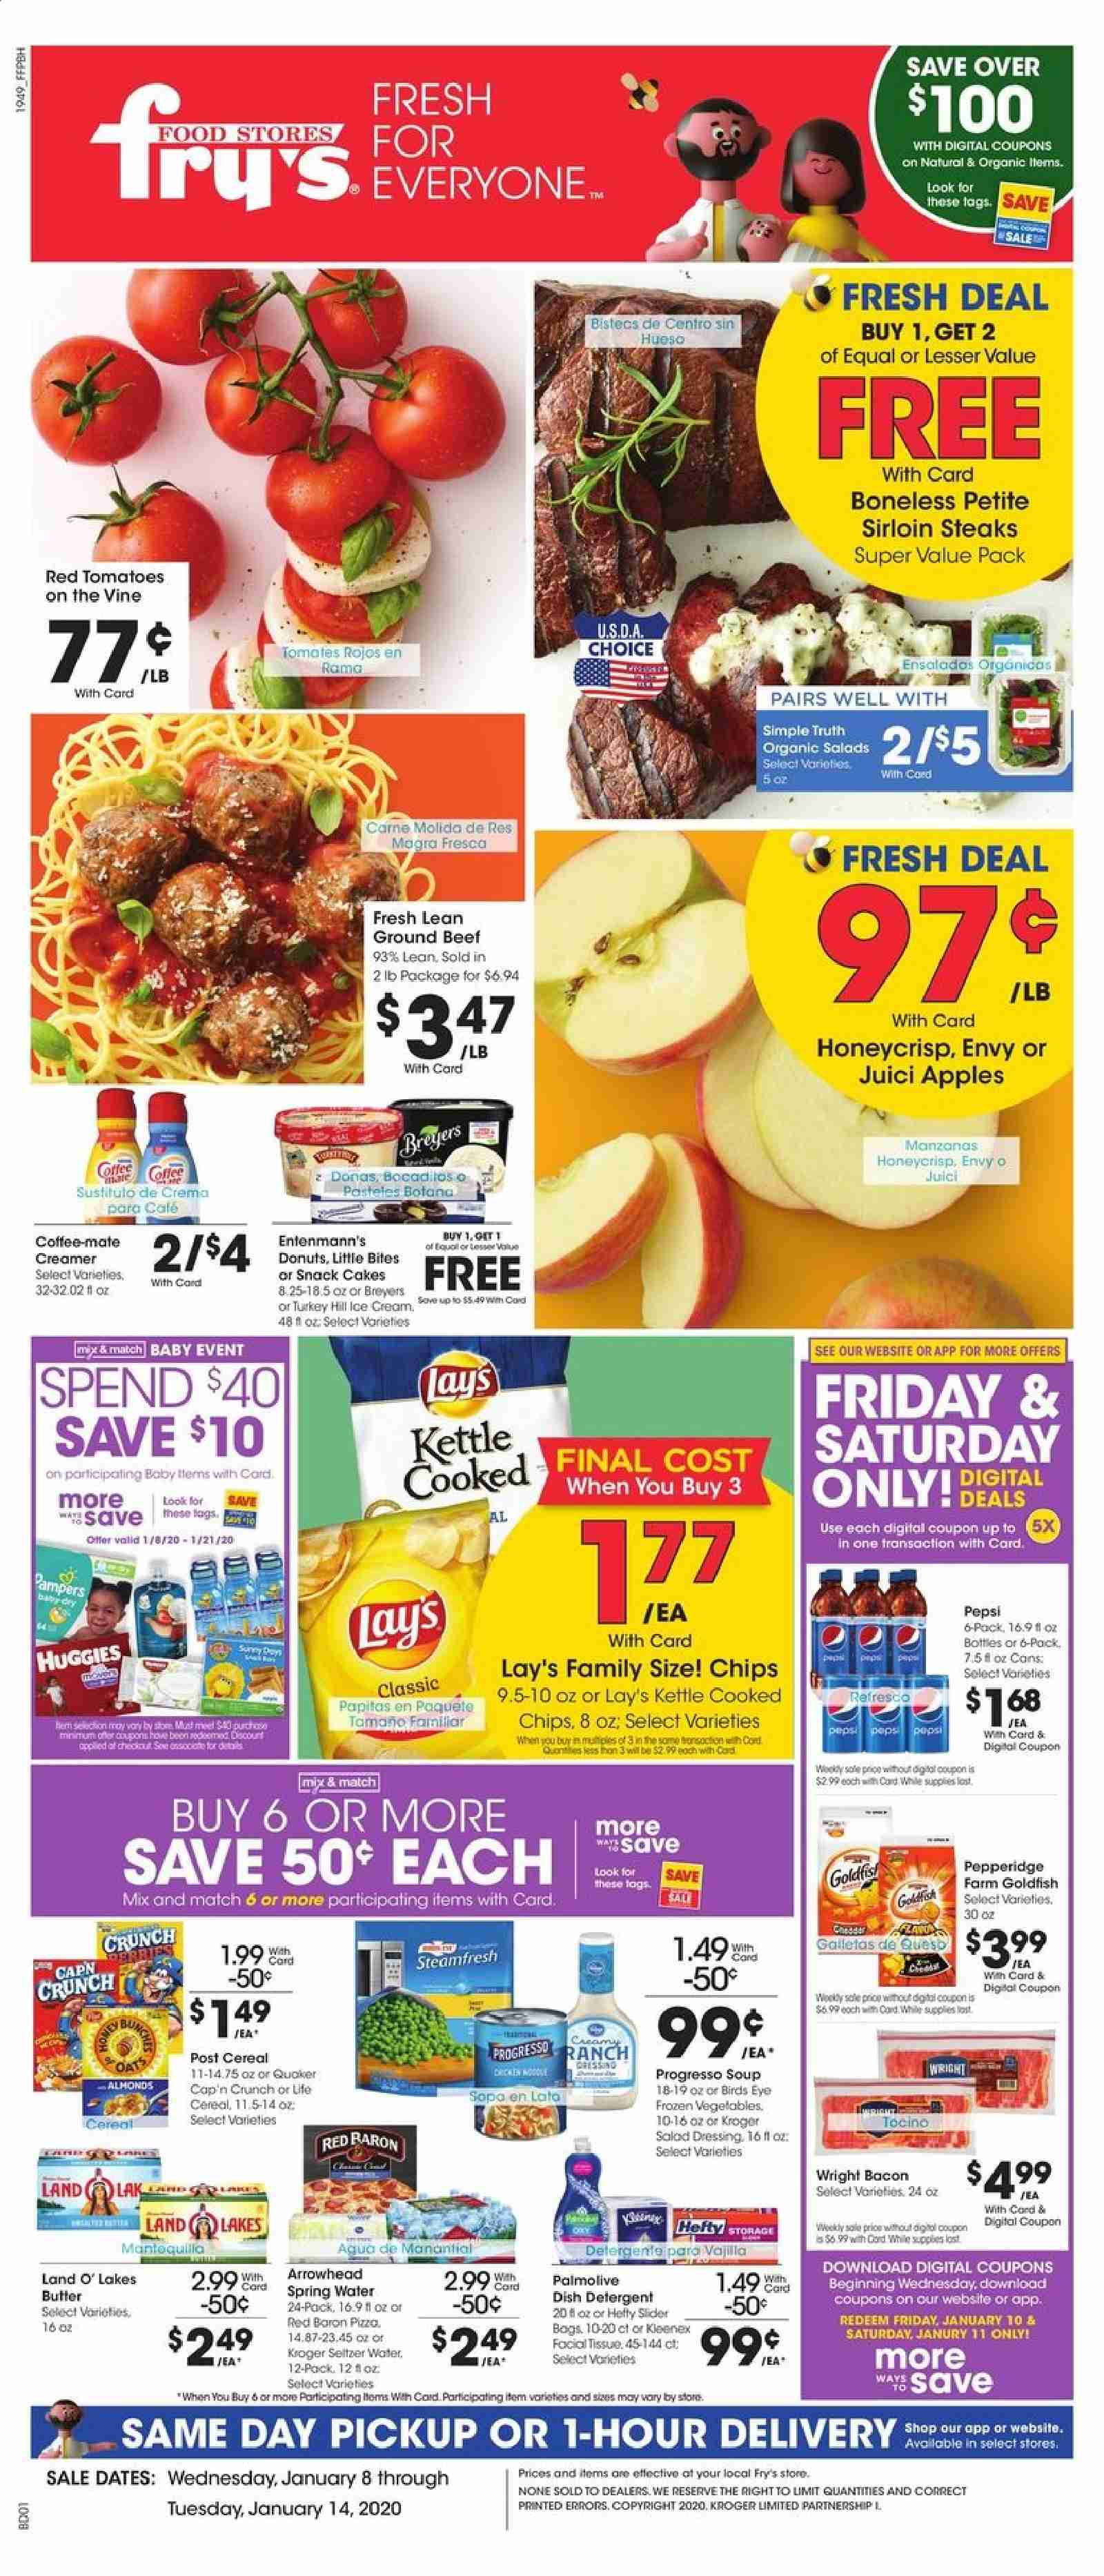 Fry's Flyer  - 01.08.2020 - 01.14.2020. Page 1.